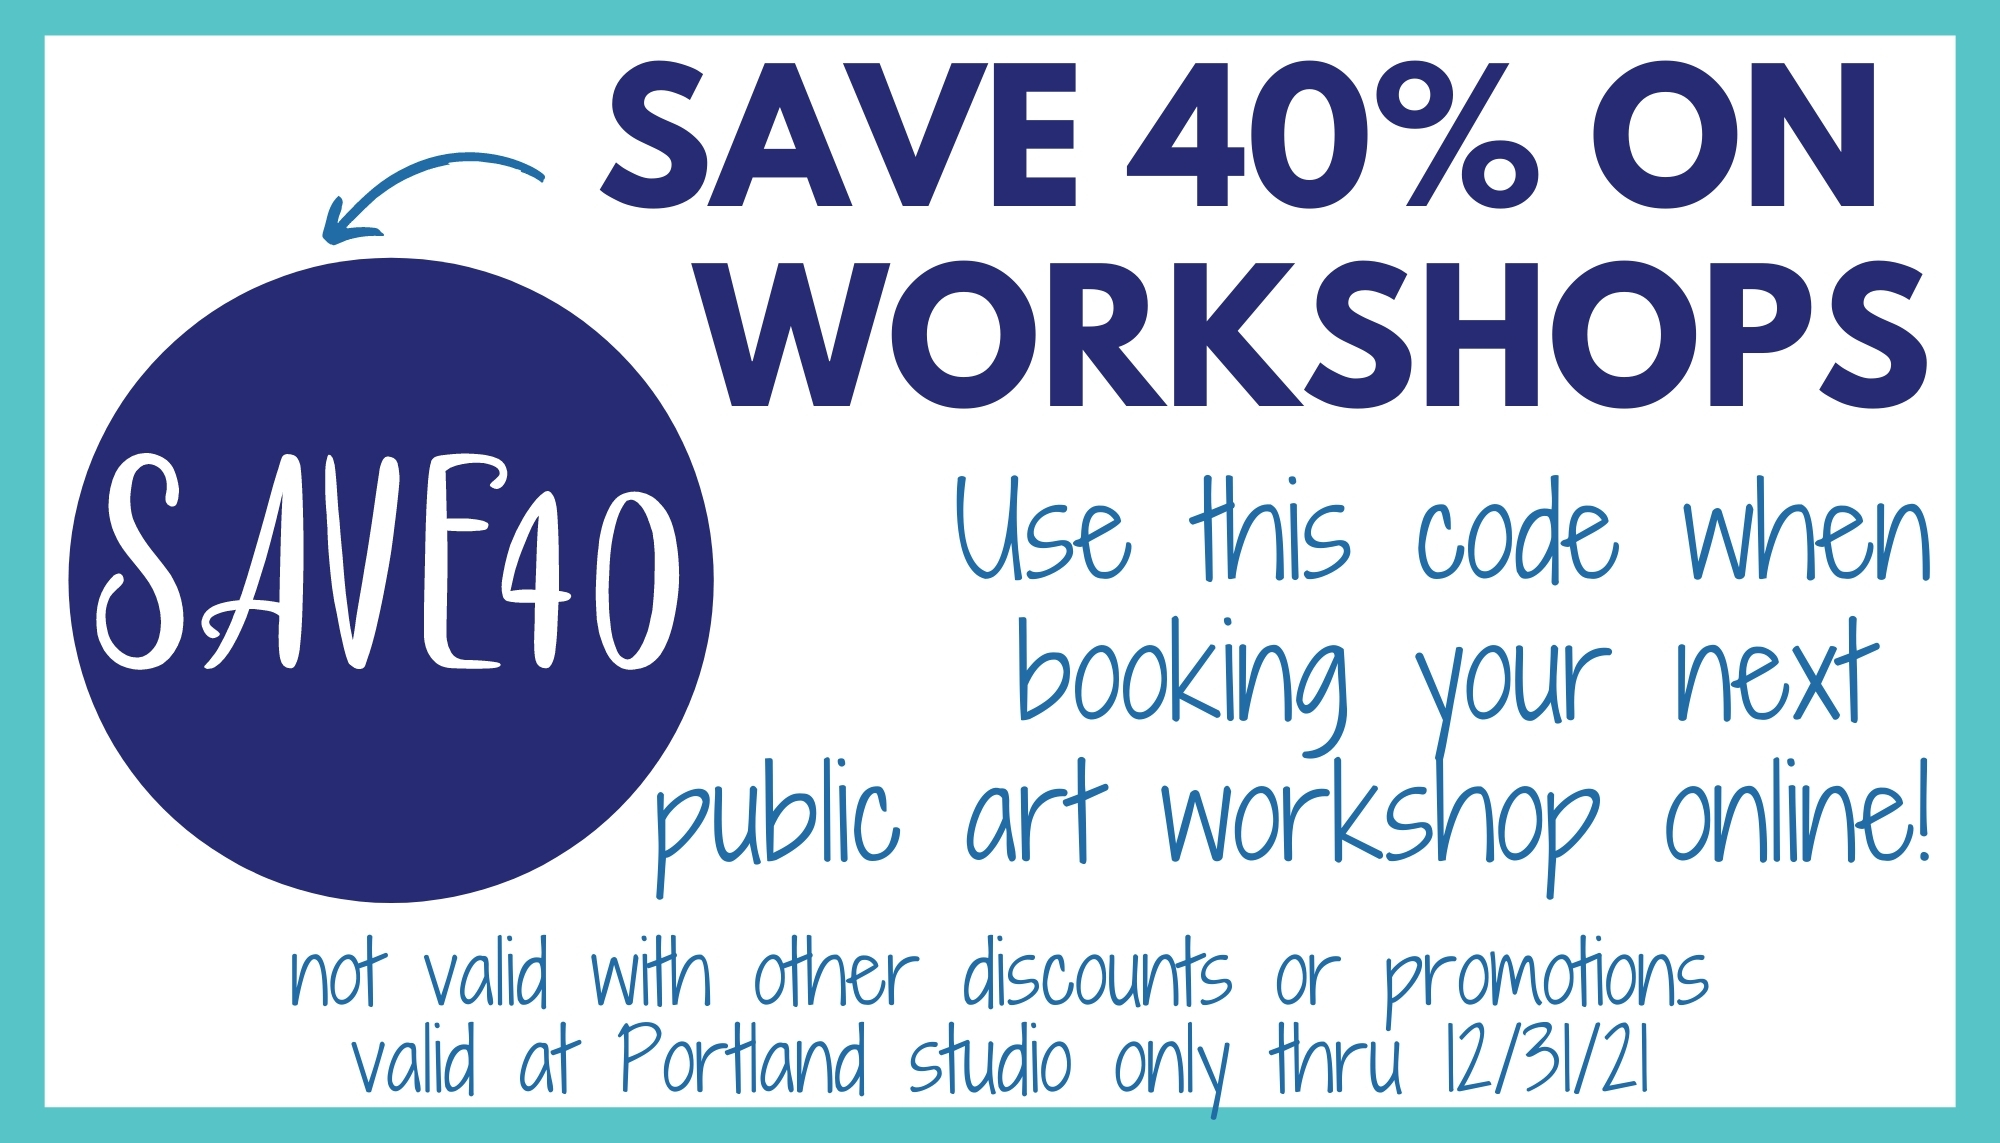 save 40% on public diy art and glassblowing workshops at the portland studio valid through 12/31/21 cannot be combined with other discounts or promotions